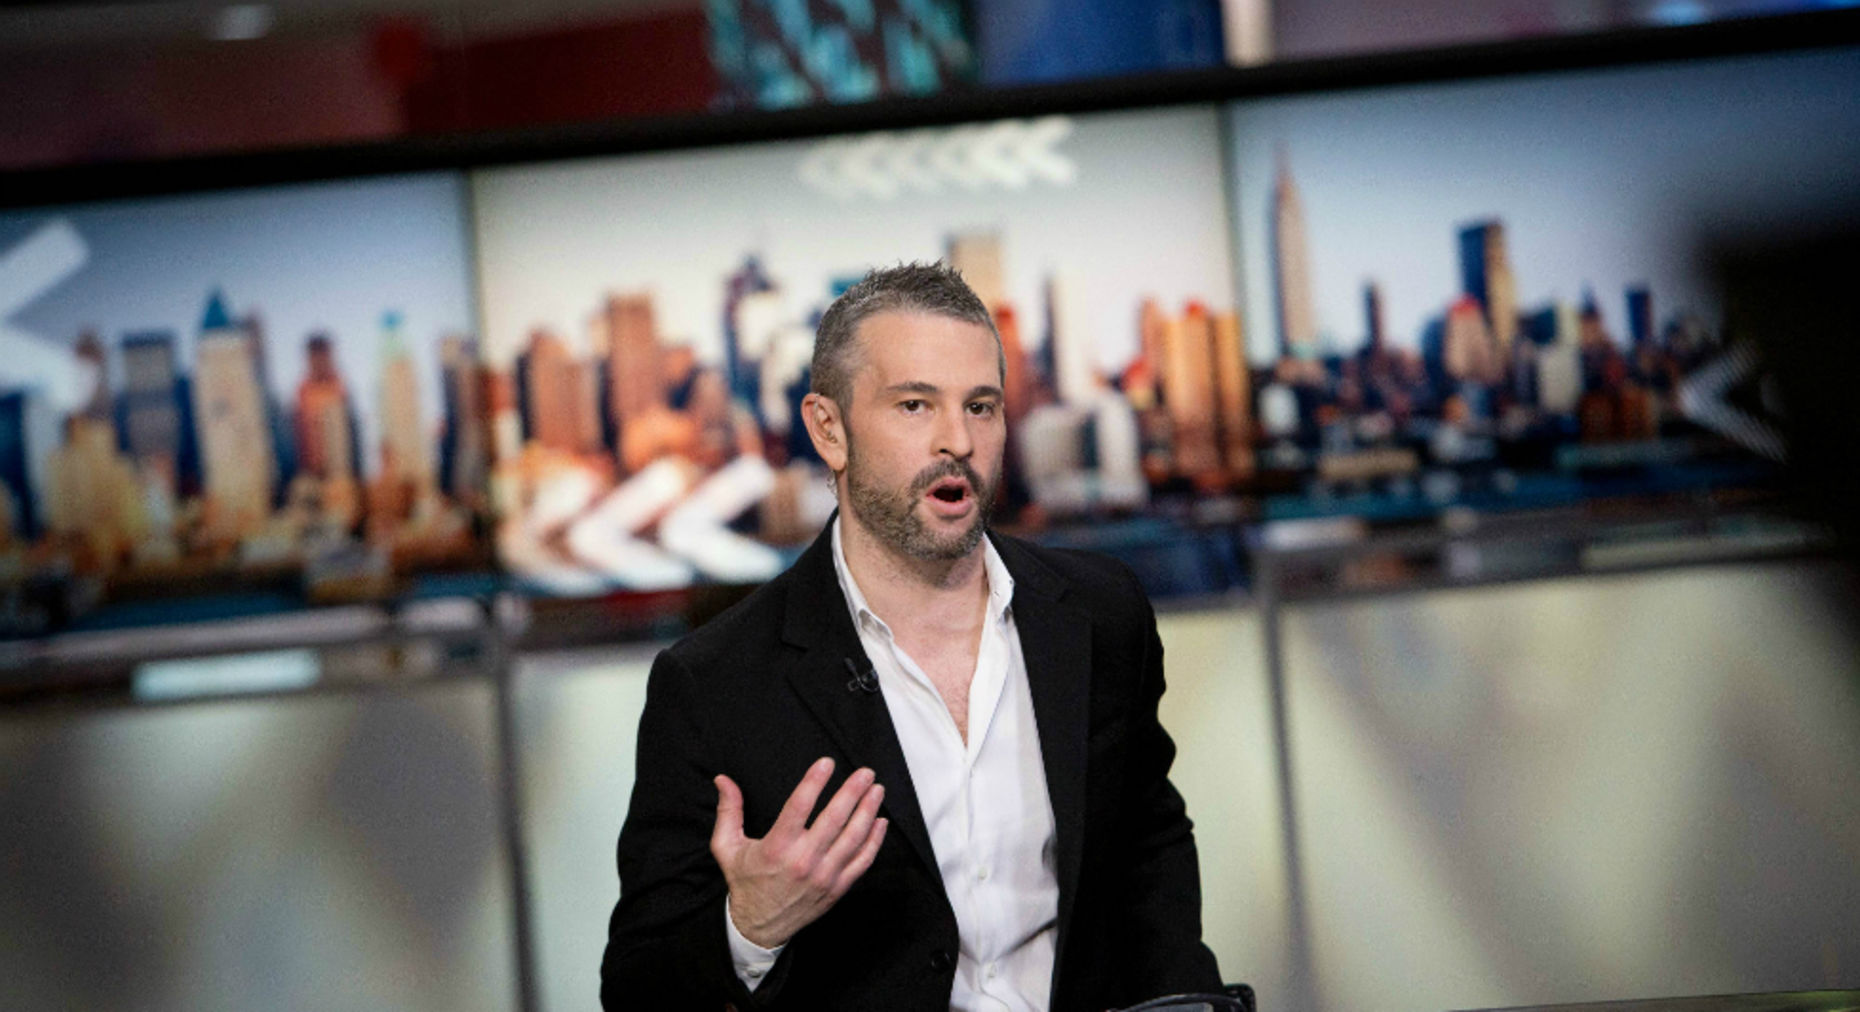 Fab.com CEO Jason Goldberg. Photo by Bloomberg.